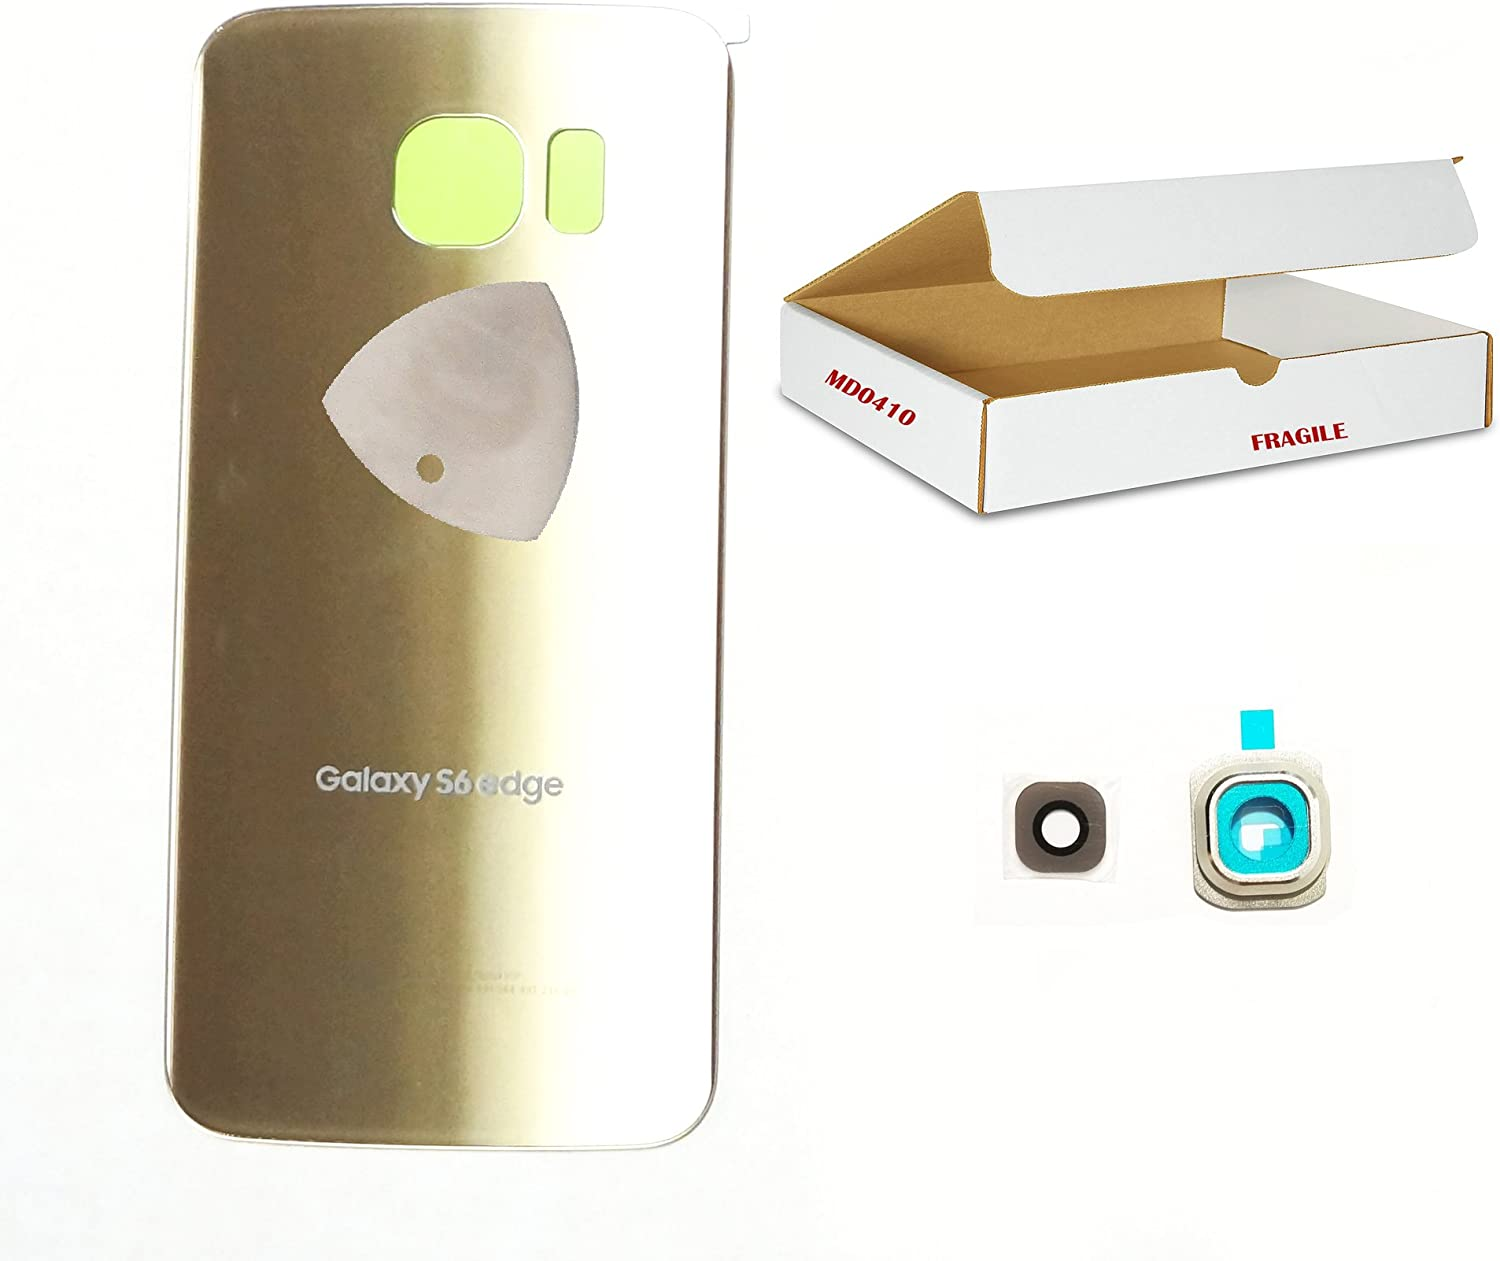 Adhesive Opening Tool Gold Back Glass Door Rear housing Camera Lens Cover Compatible for Galaxy S6 Edge G925 Replacement md0410